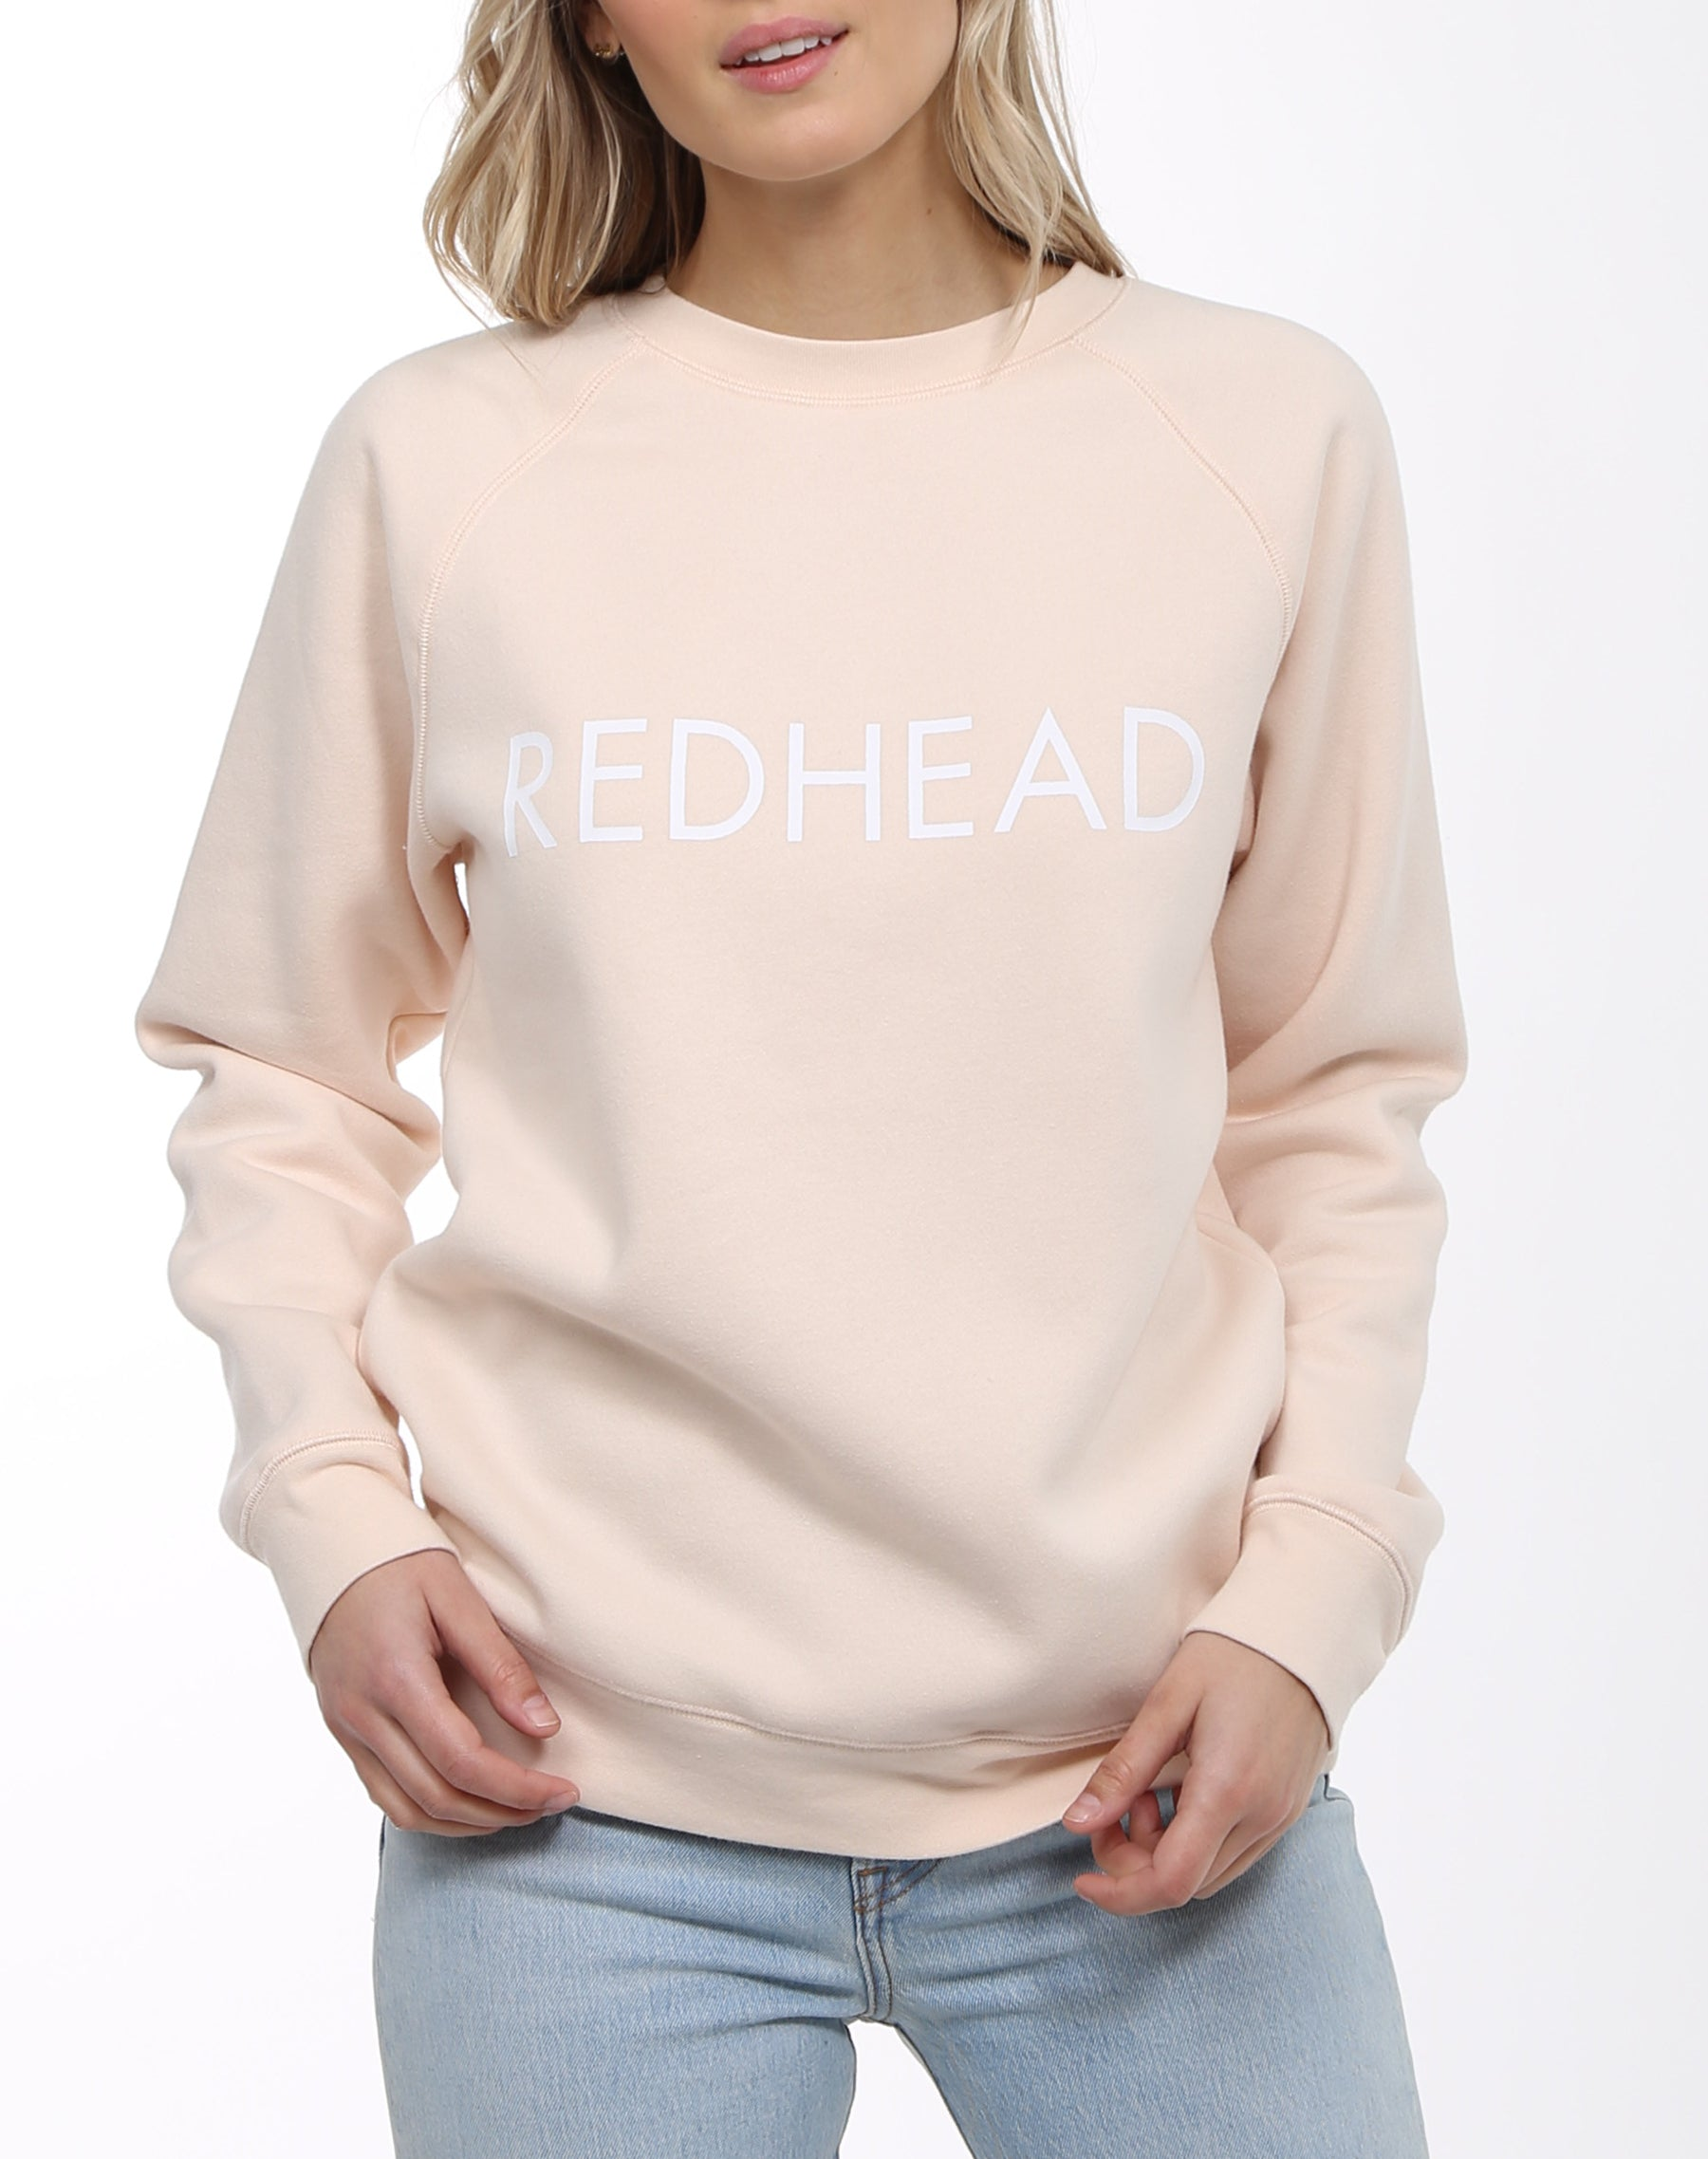 Photo 2 of the Redhead classic crew neck sweatshirt in peach crush by brunette the label.